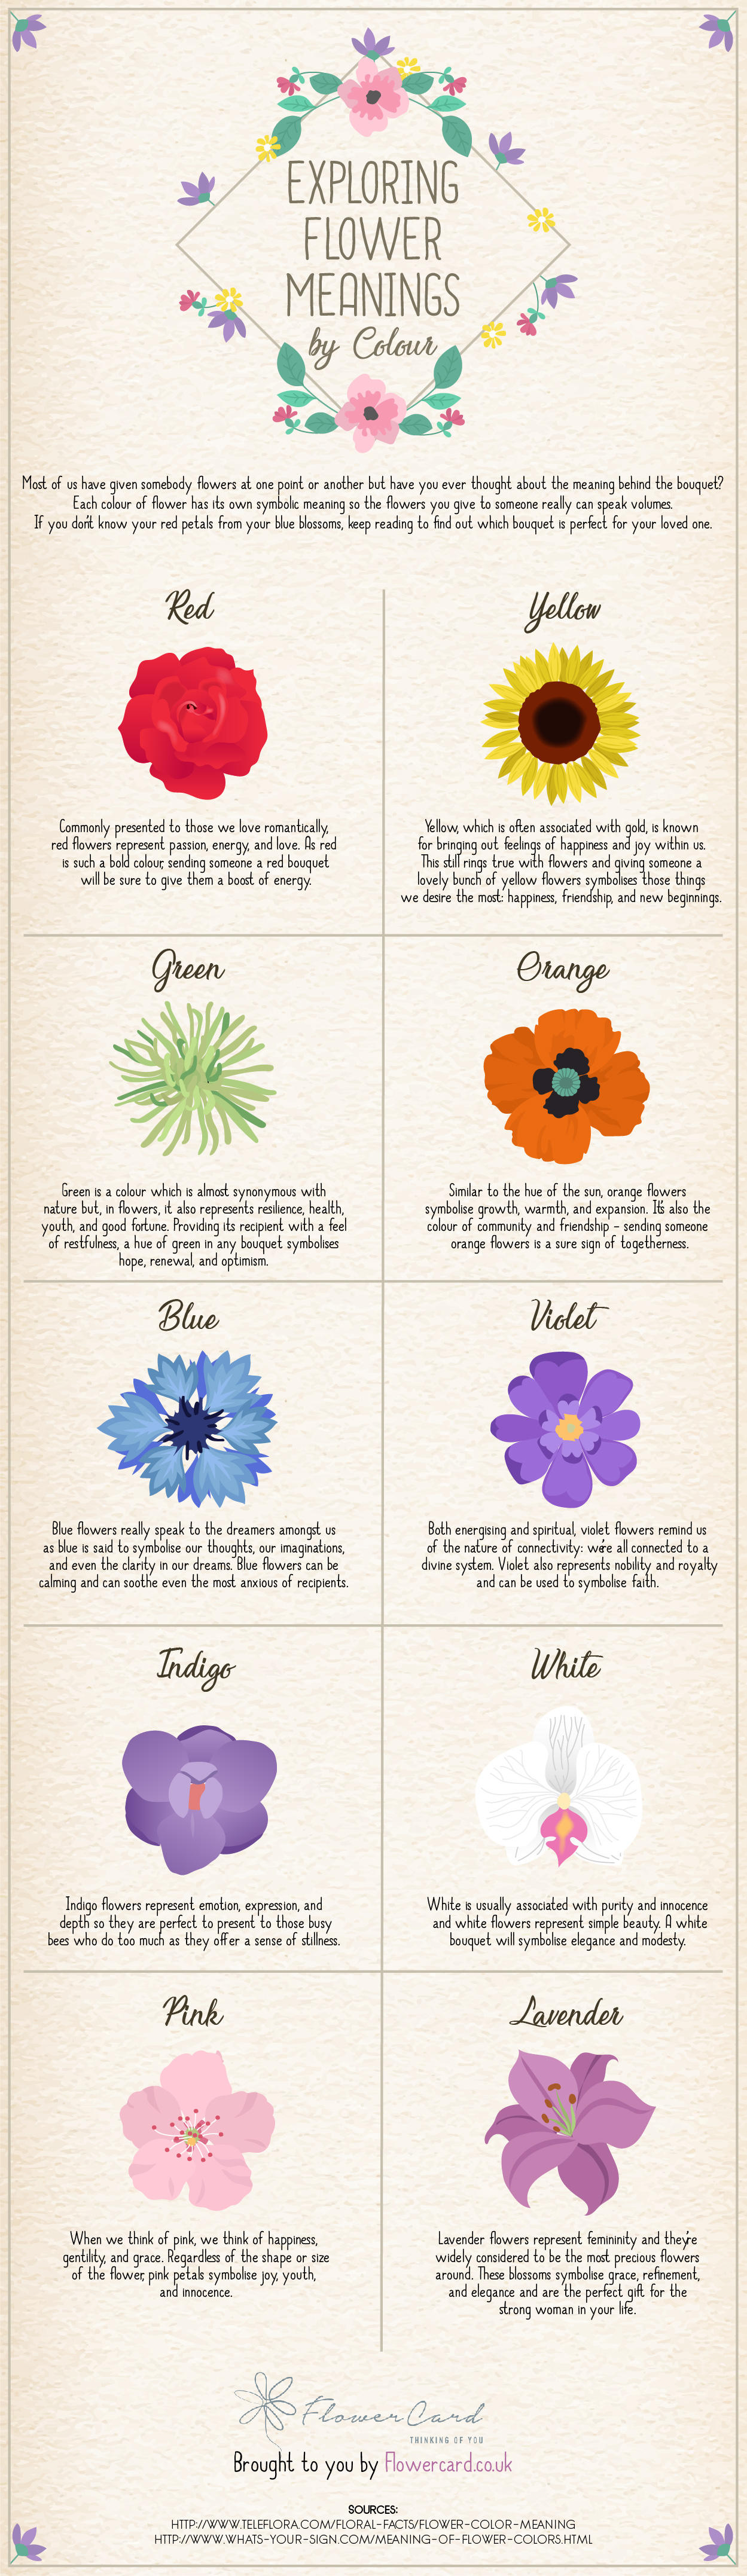 Exploring flower meanings by colour infographic flowercard flowercard blog izmirmasajfo